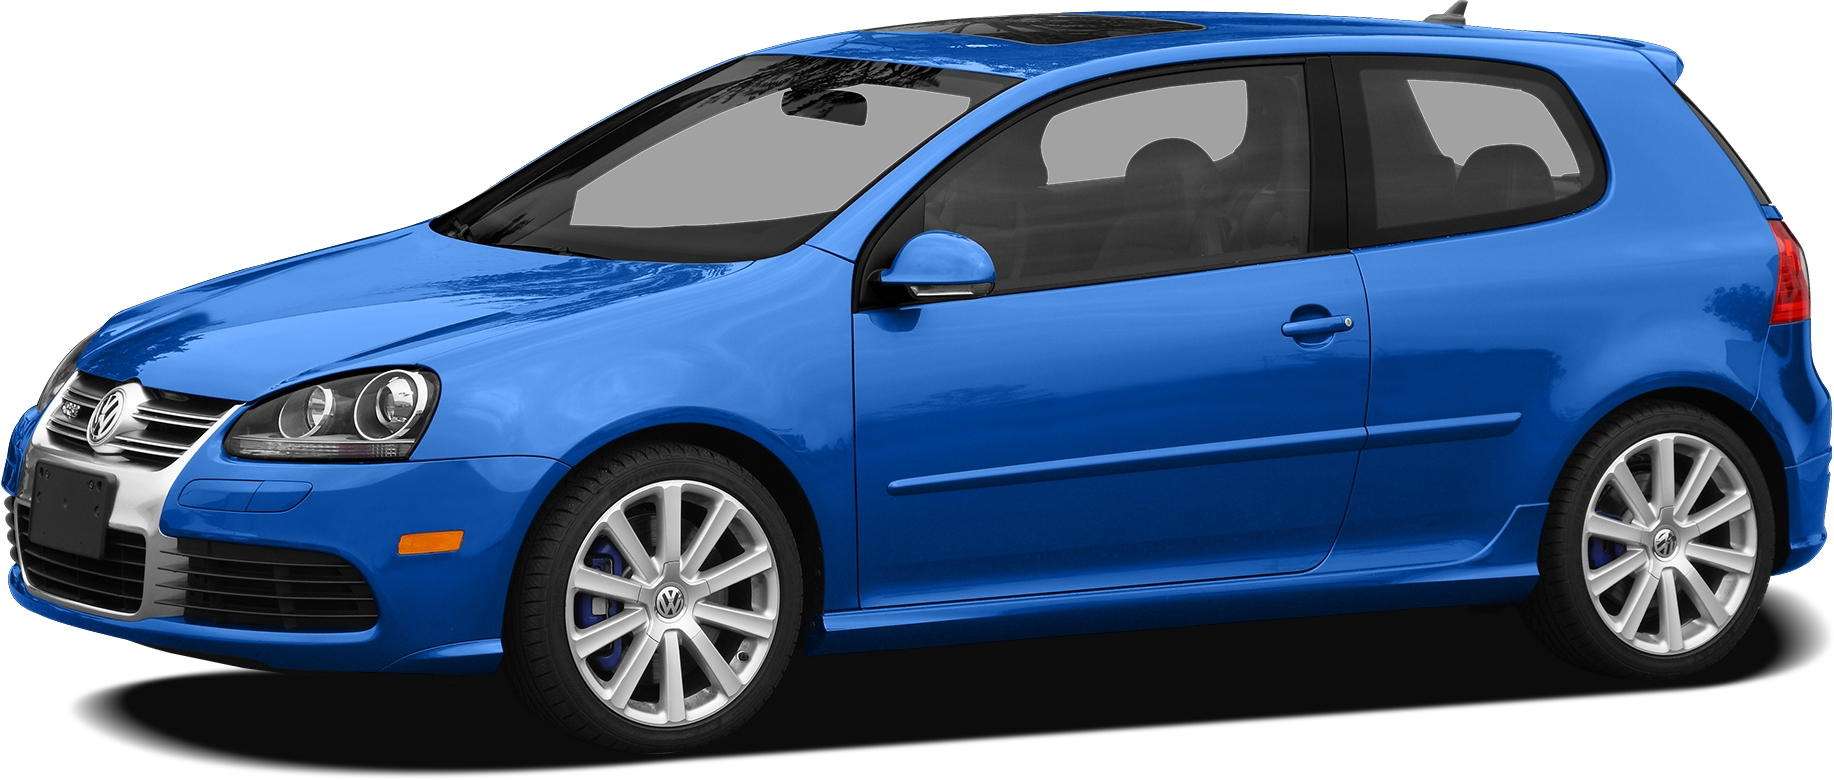 2016 Volkswagen New Beetle Coupe Vw Quality Review Specs